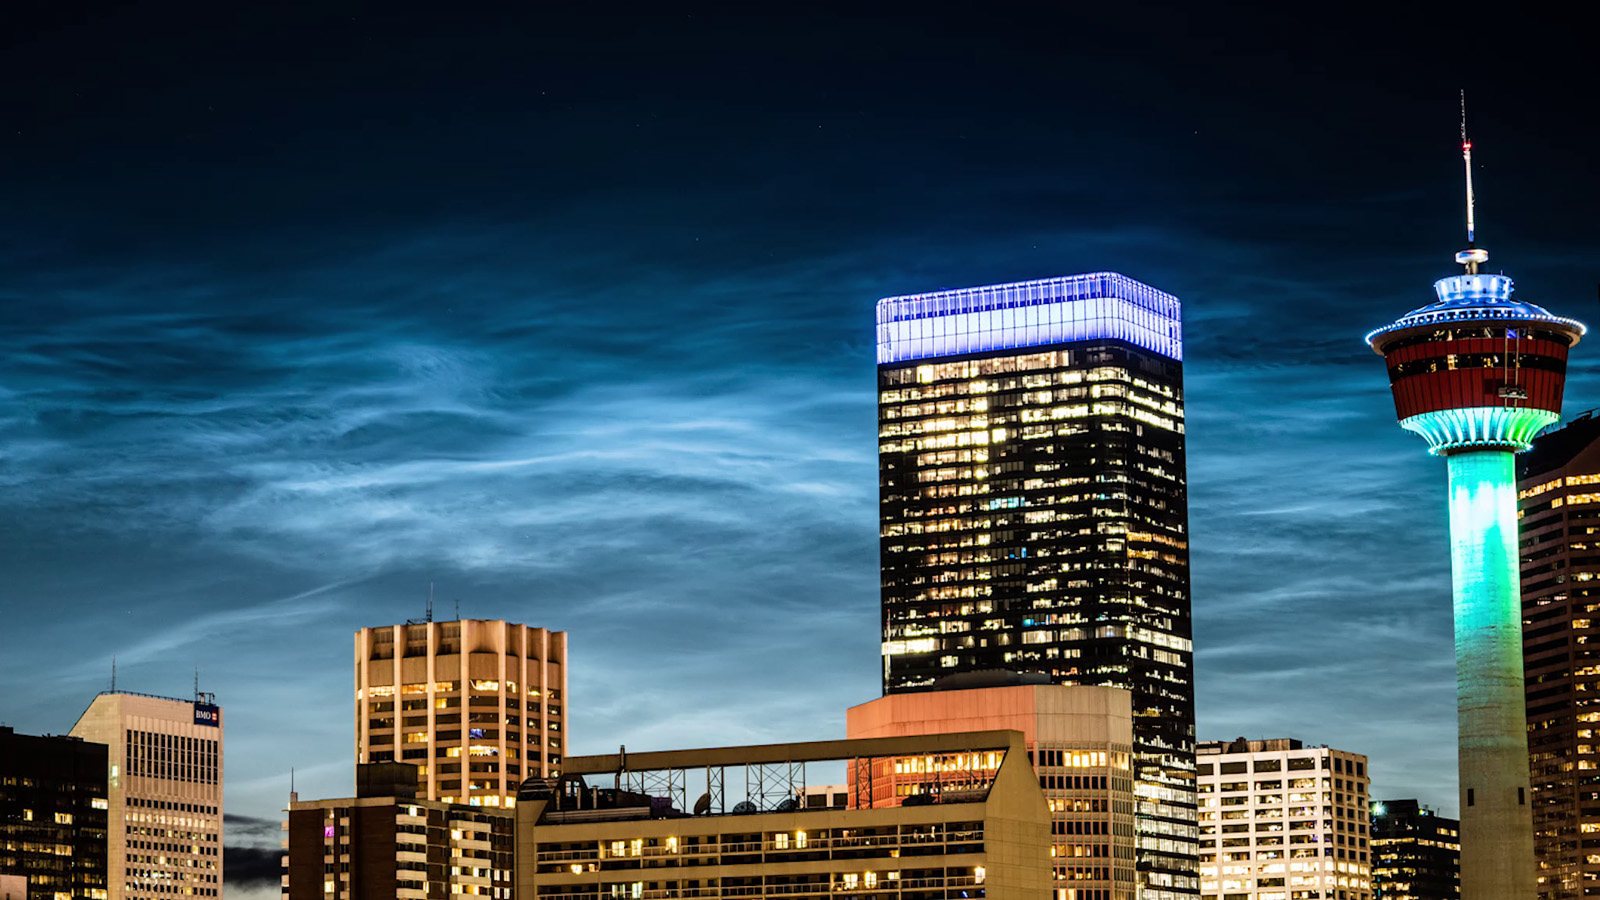 Night-shining clouds over Calgary: What's the cause of this spectacular sight?